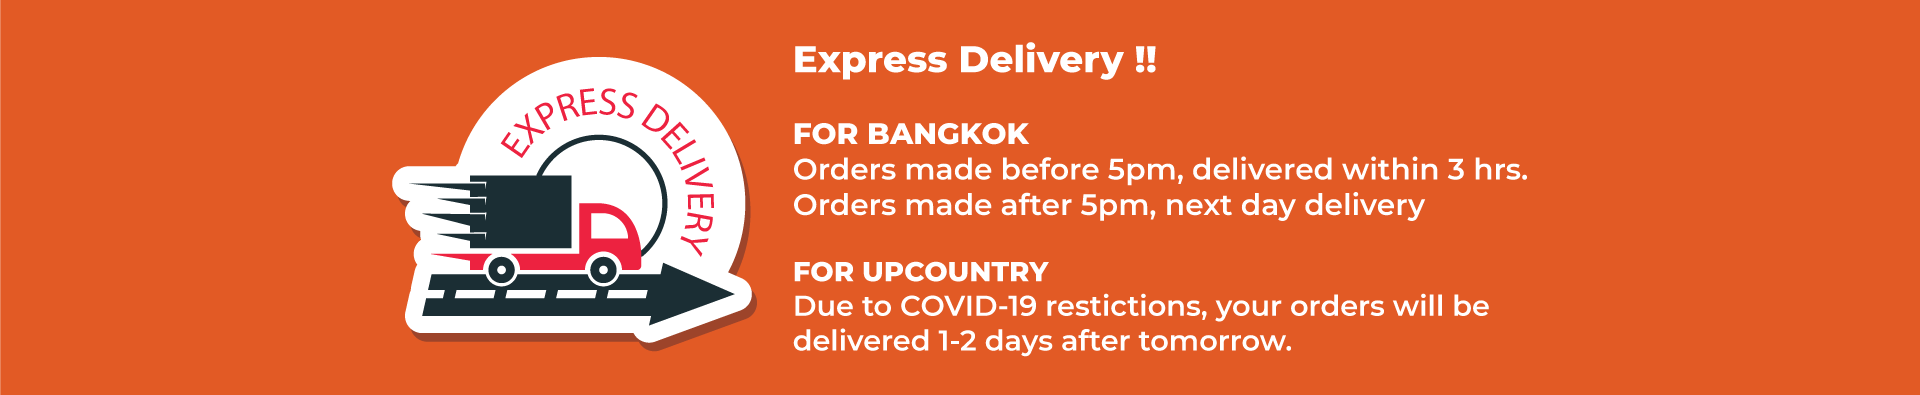 Express delivery new